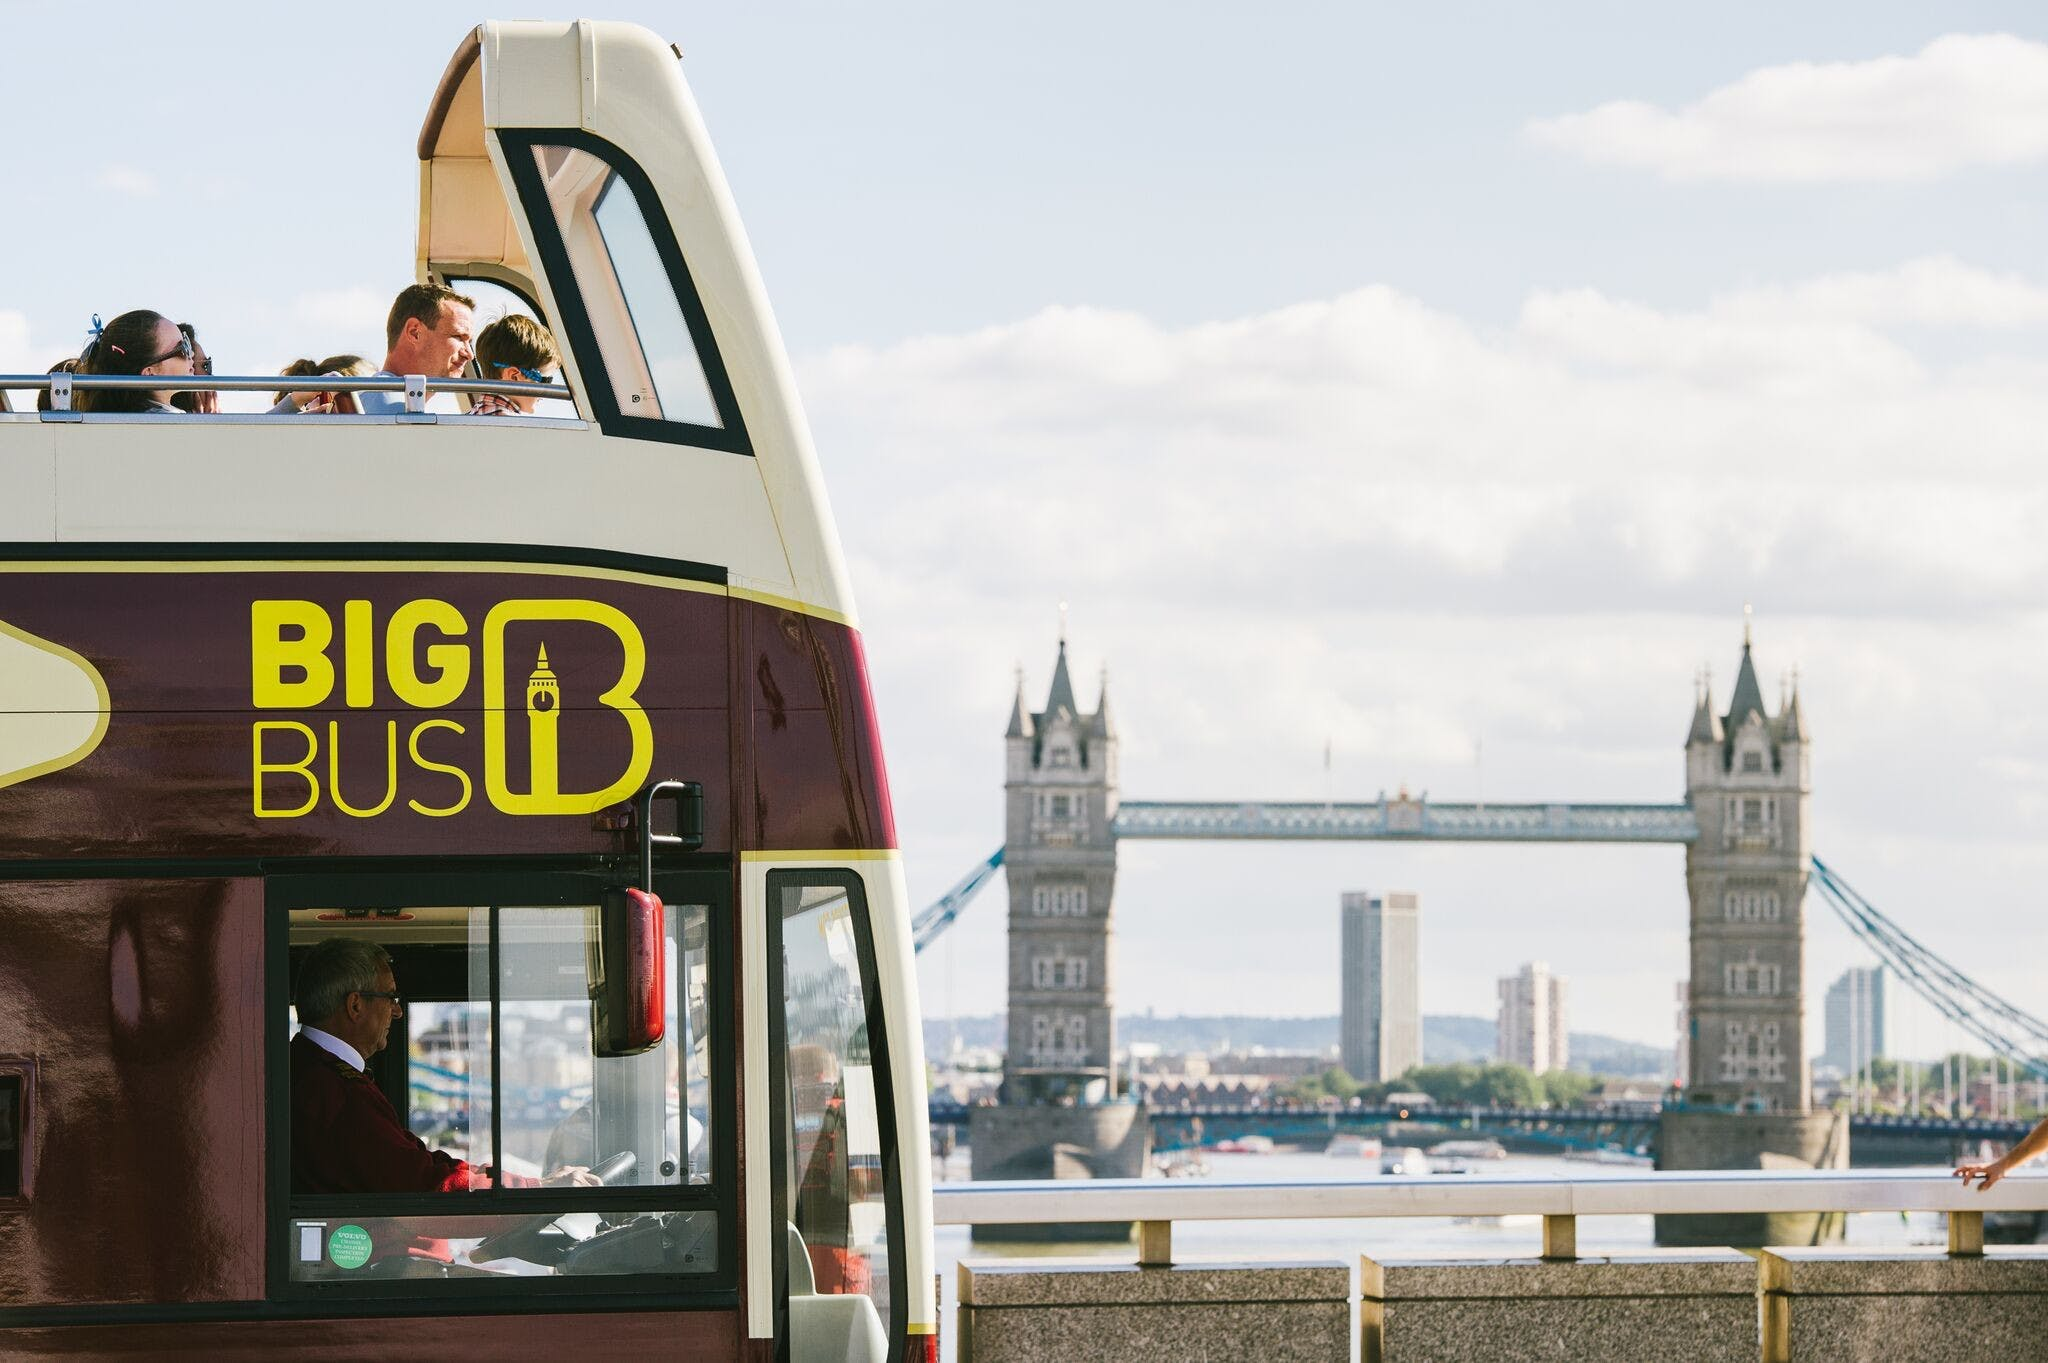 Big Bus London Tower Bridge background.jpg